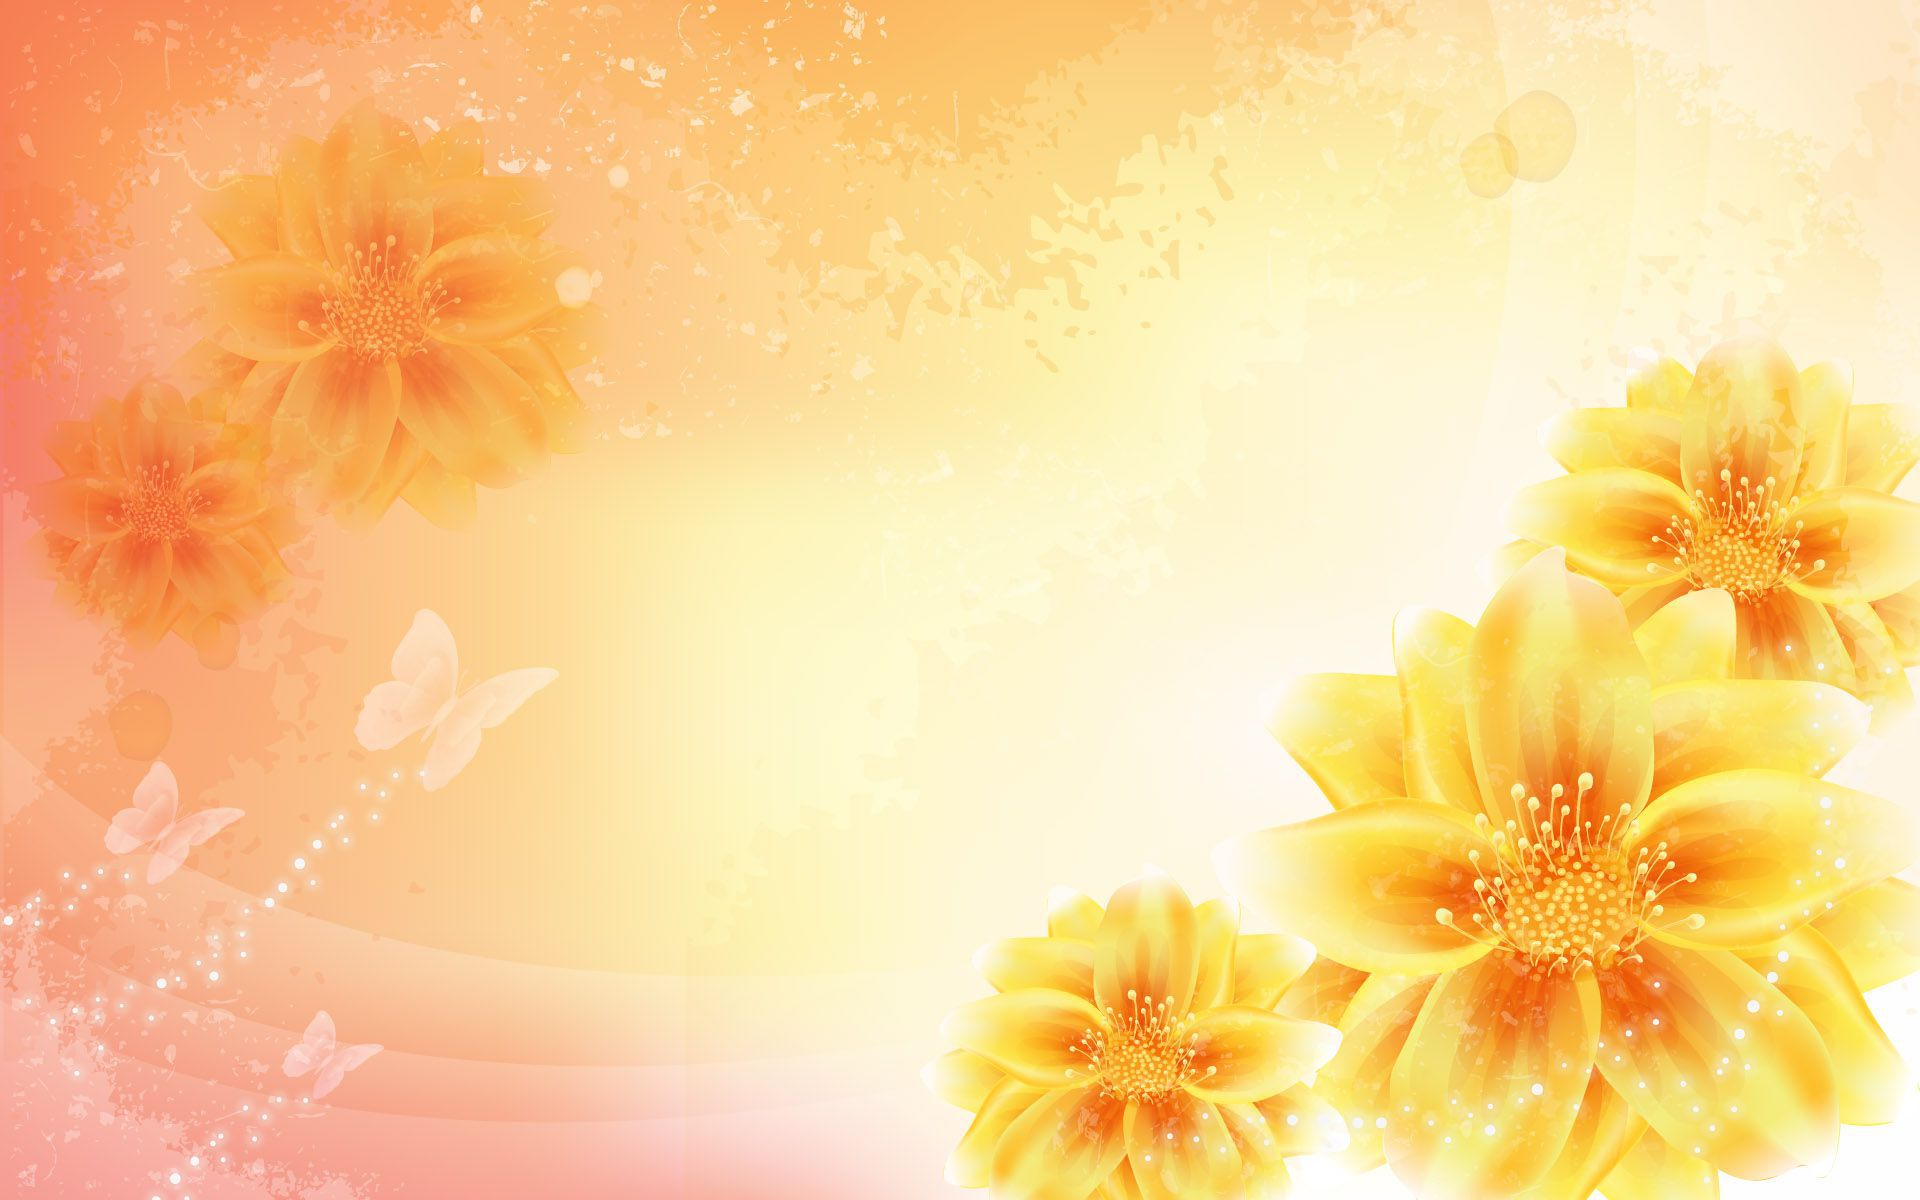 Yellow floral background photo